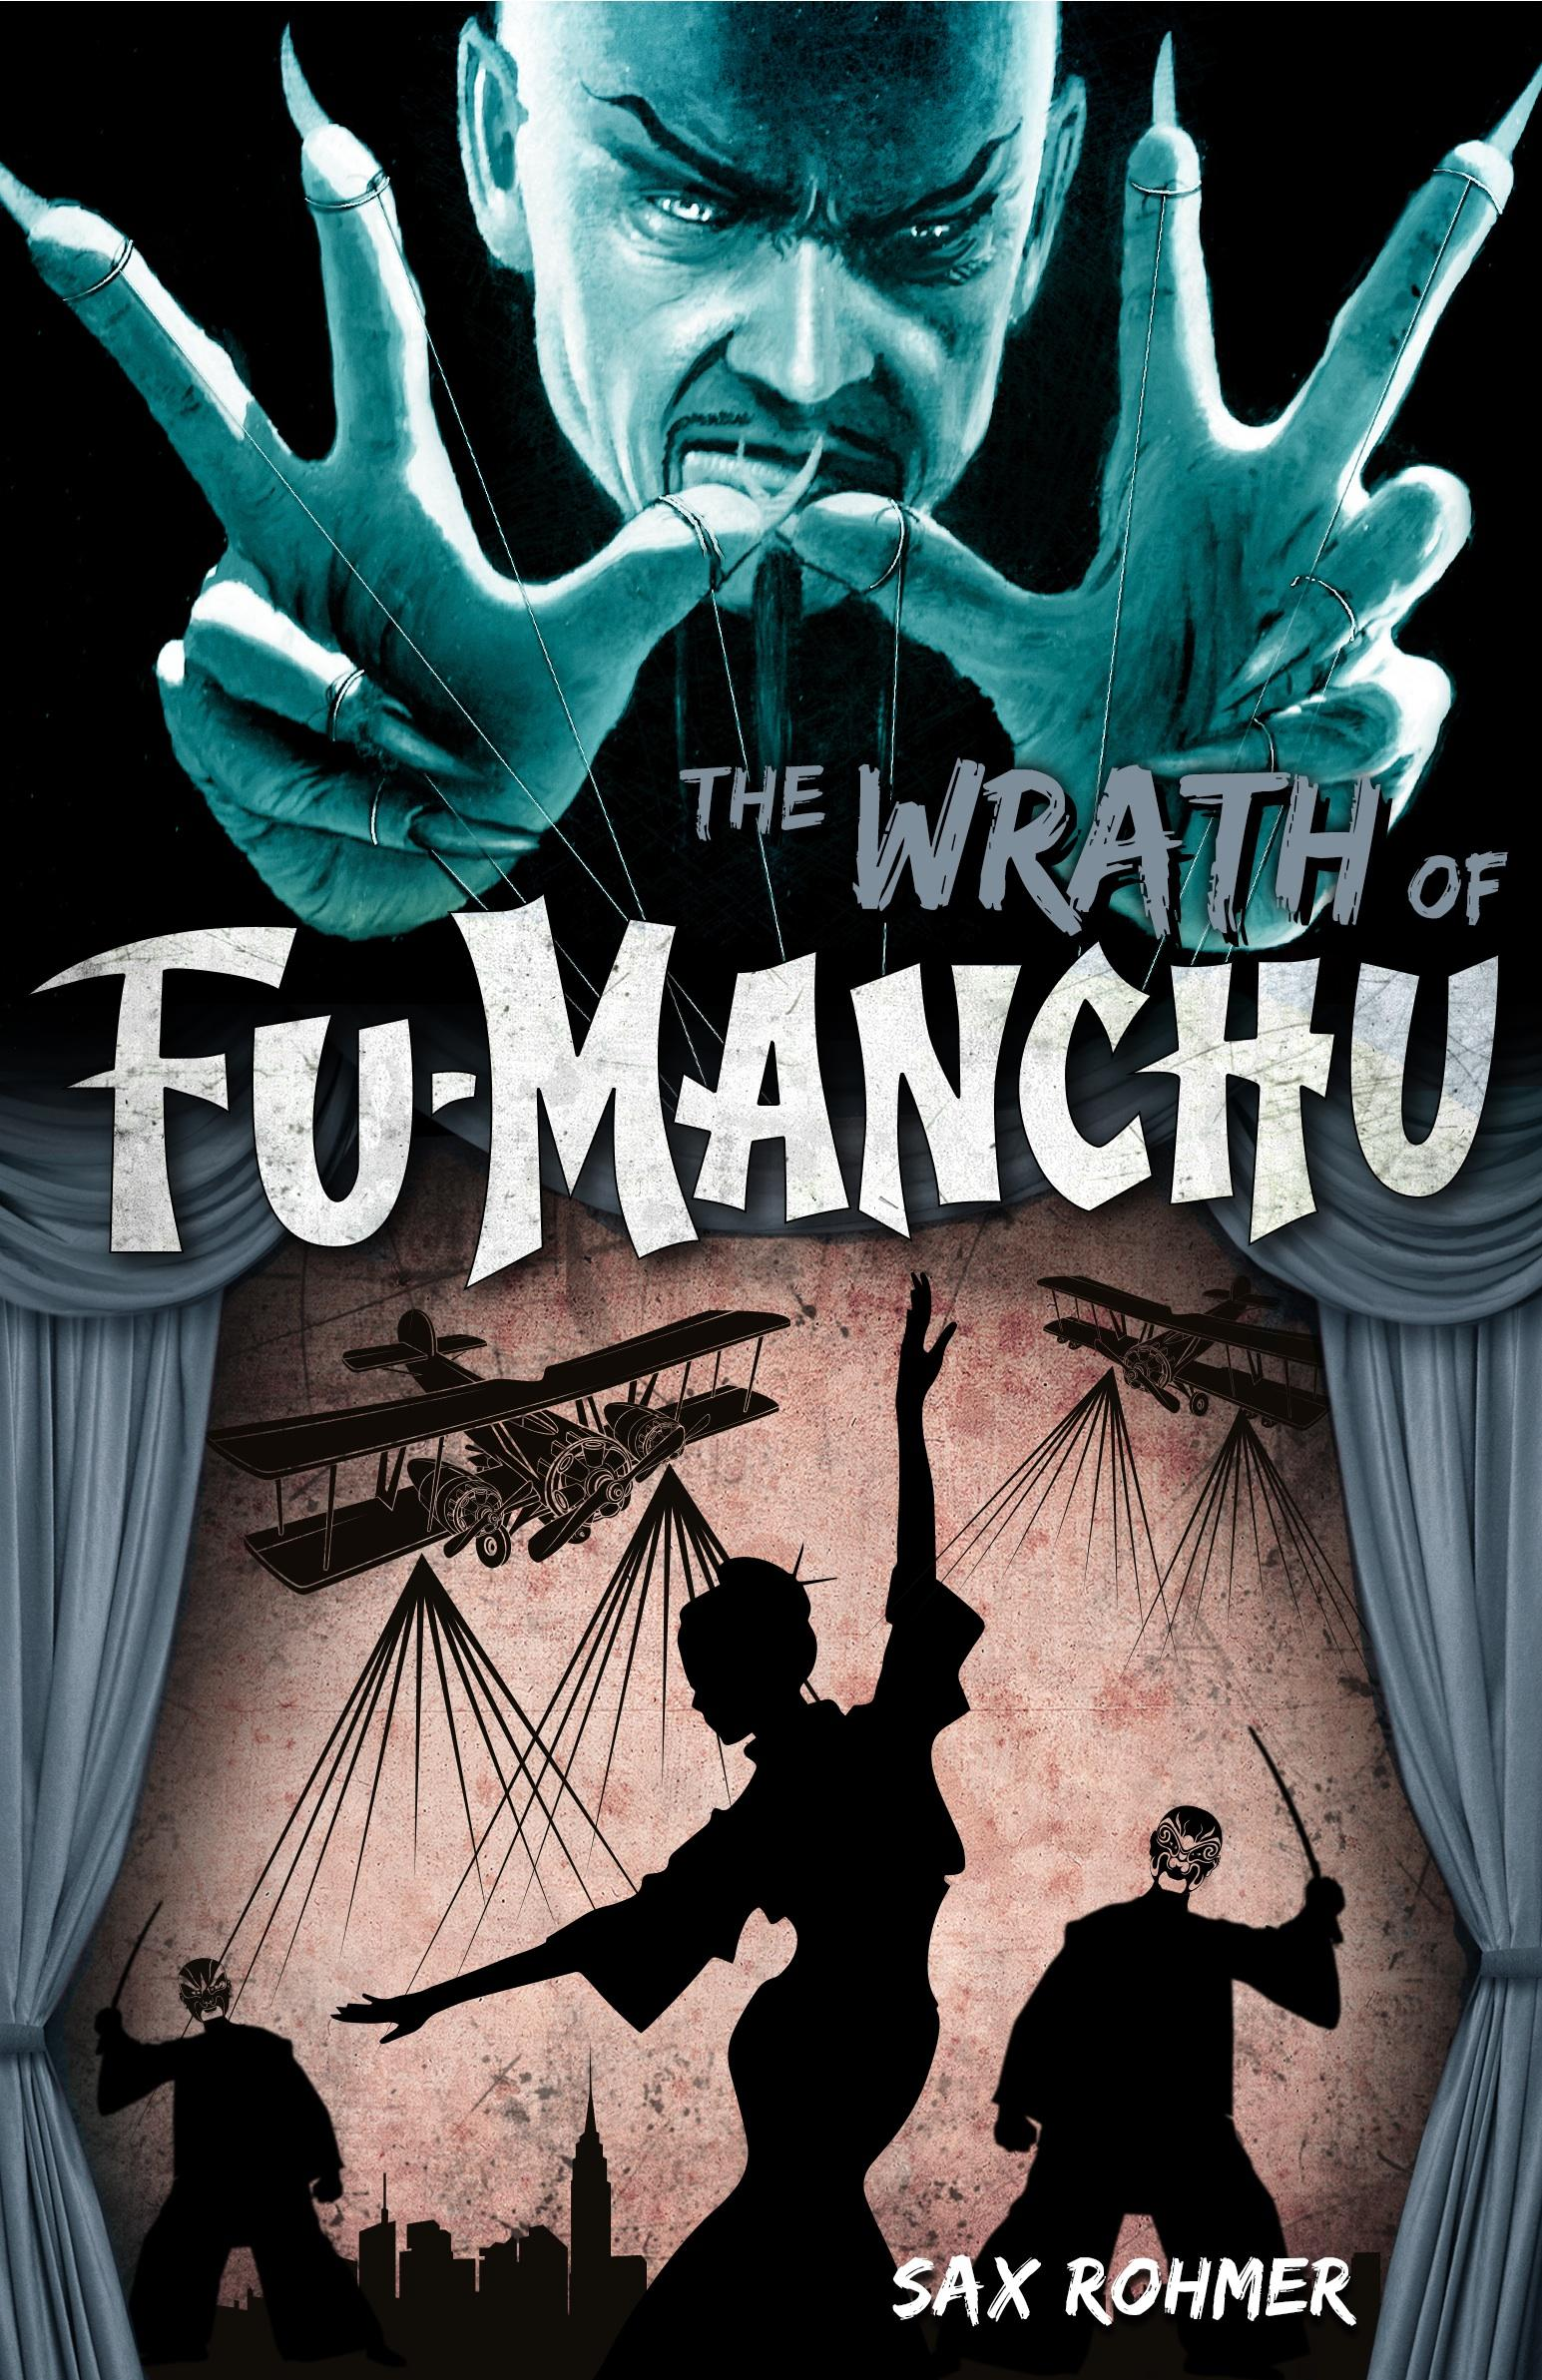 Fu-Manchu - The Wrath of Fu-Manchu and Other Stories ahdieh renee wrath and the dawn